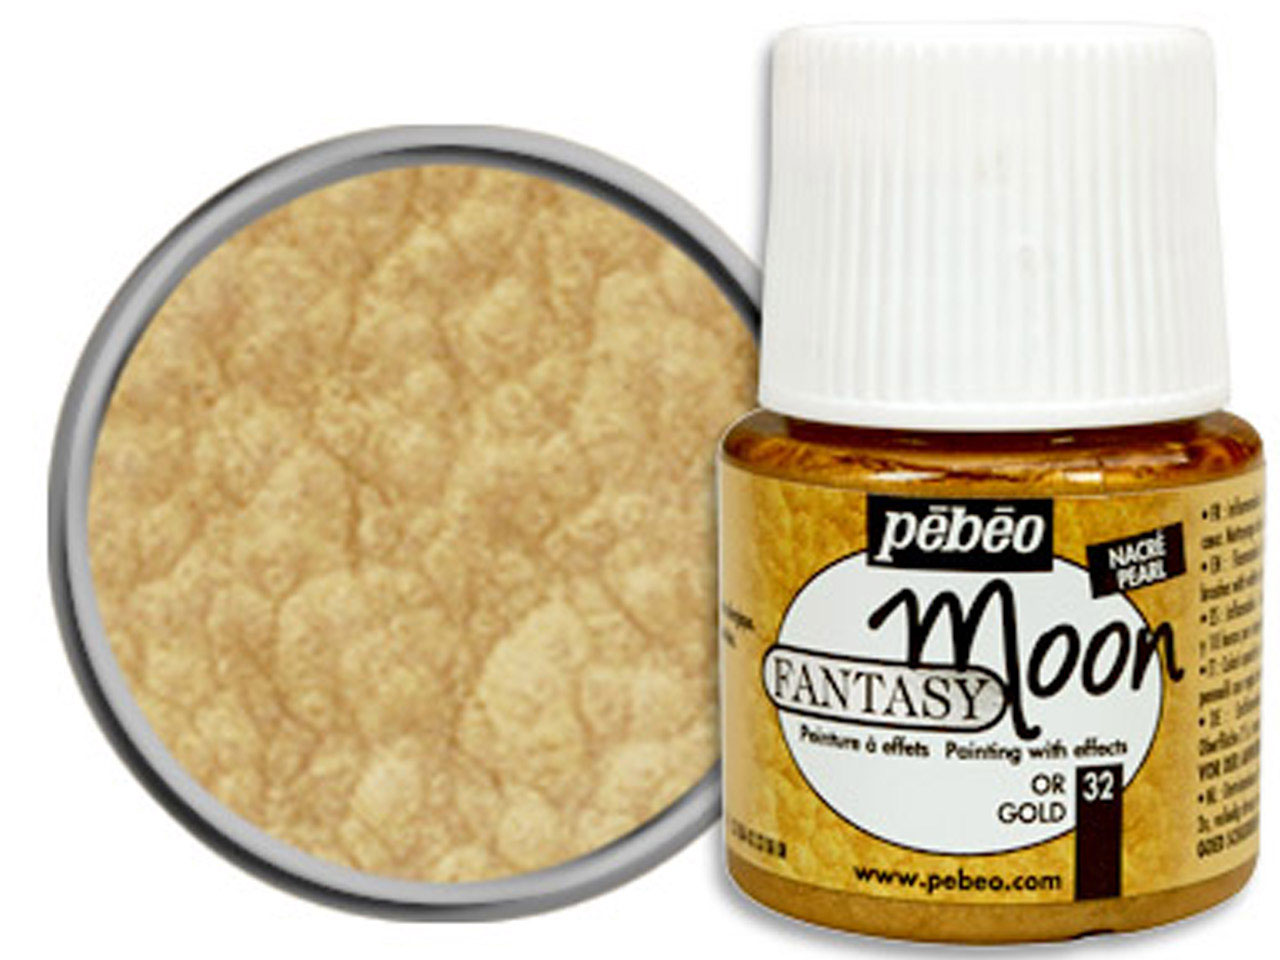 Pebeo Fantasy Moon, Gold, 45 Ml Un 1263